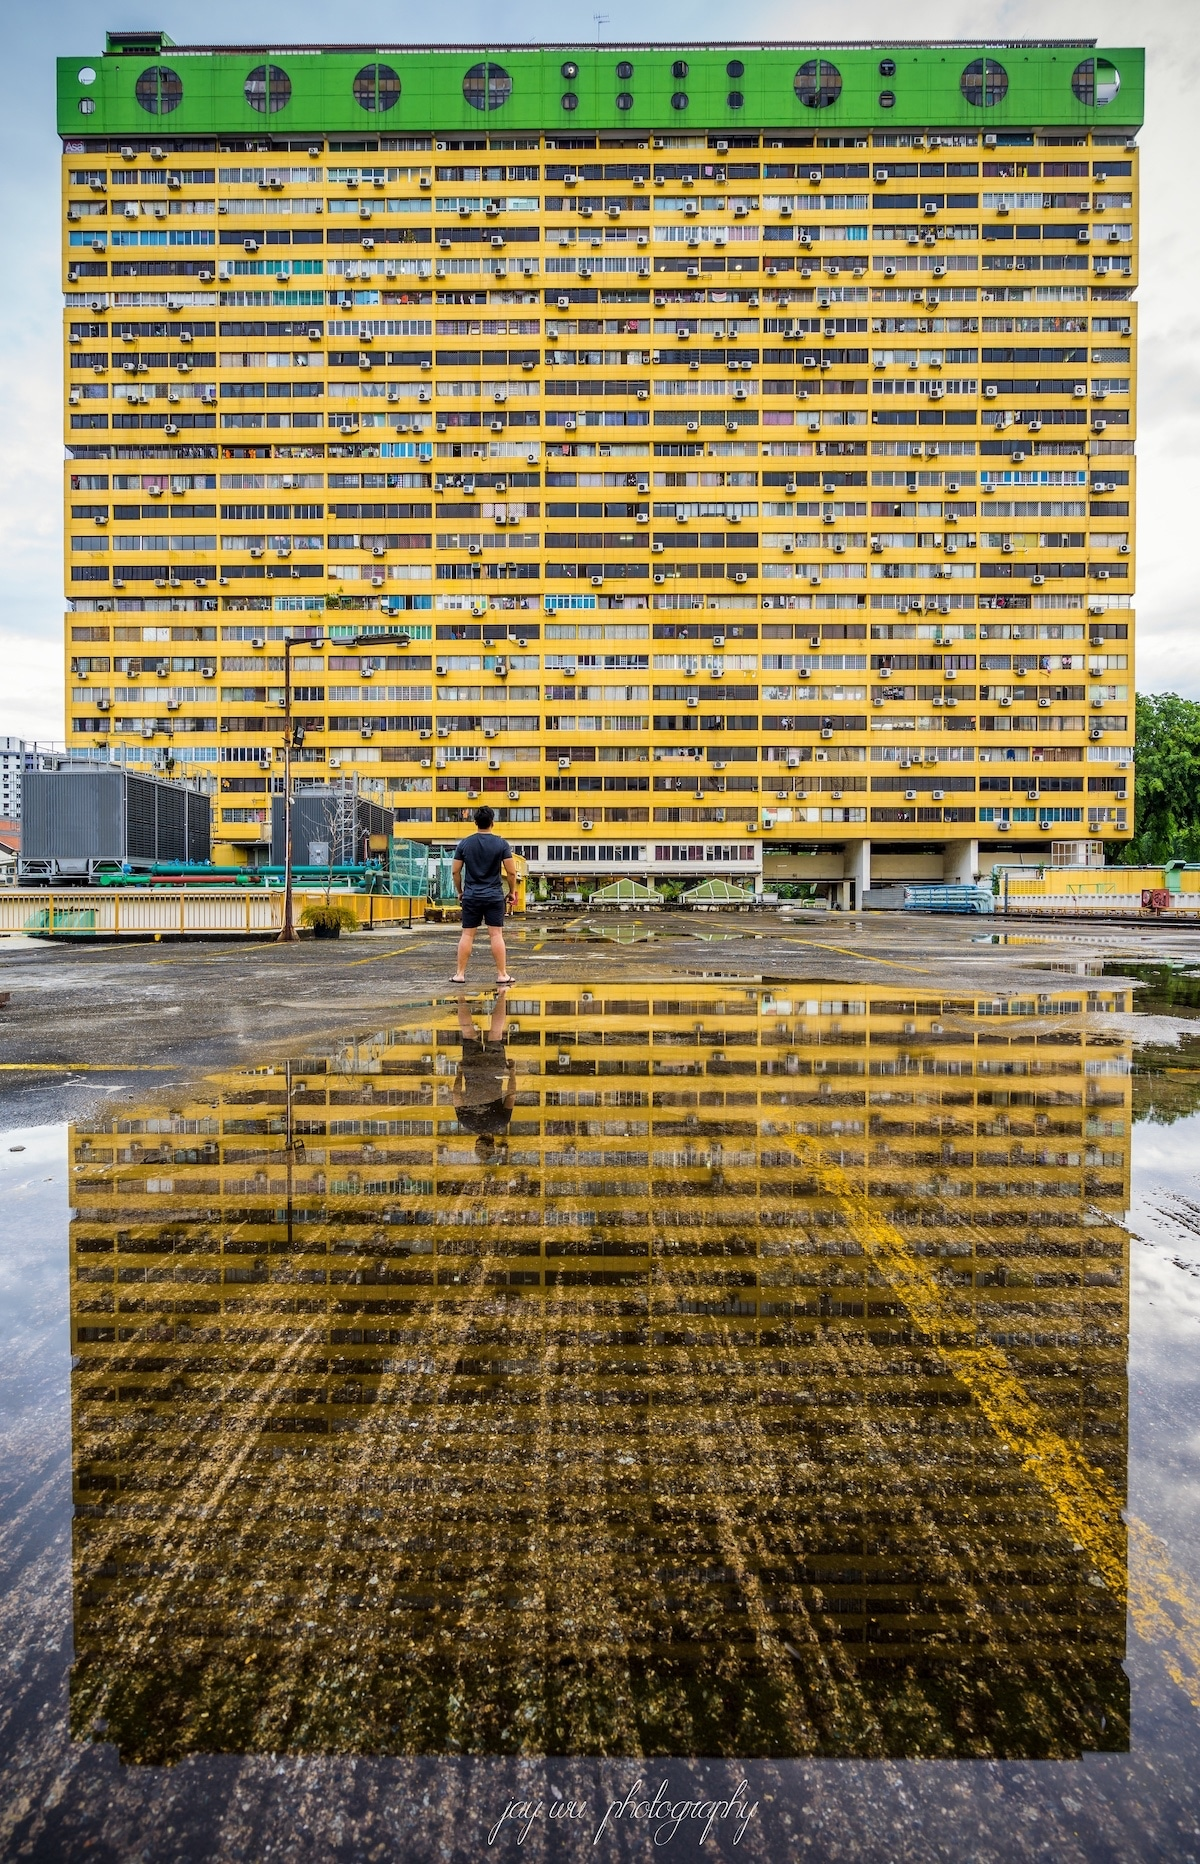 Yellow Building with Lots of Windows